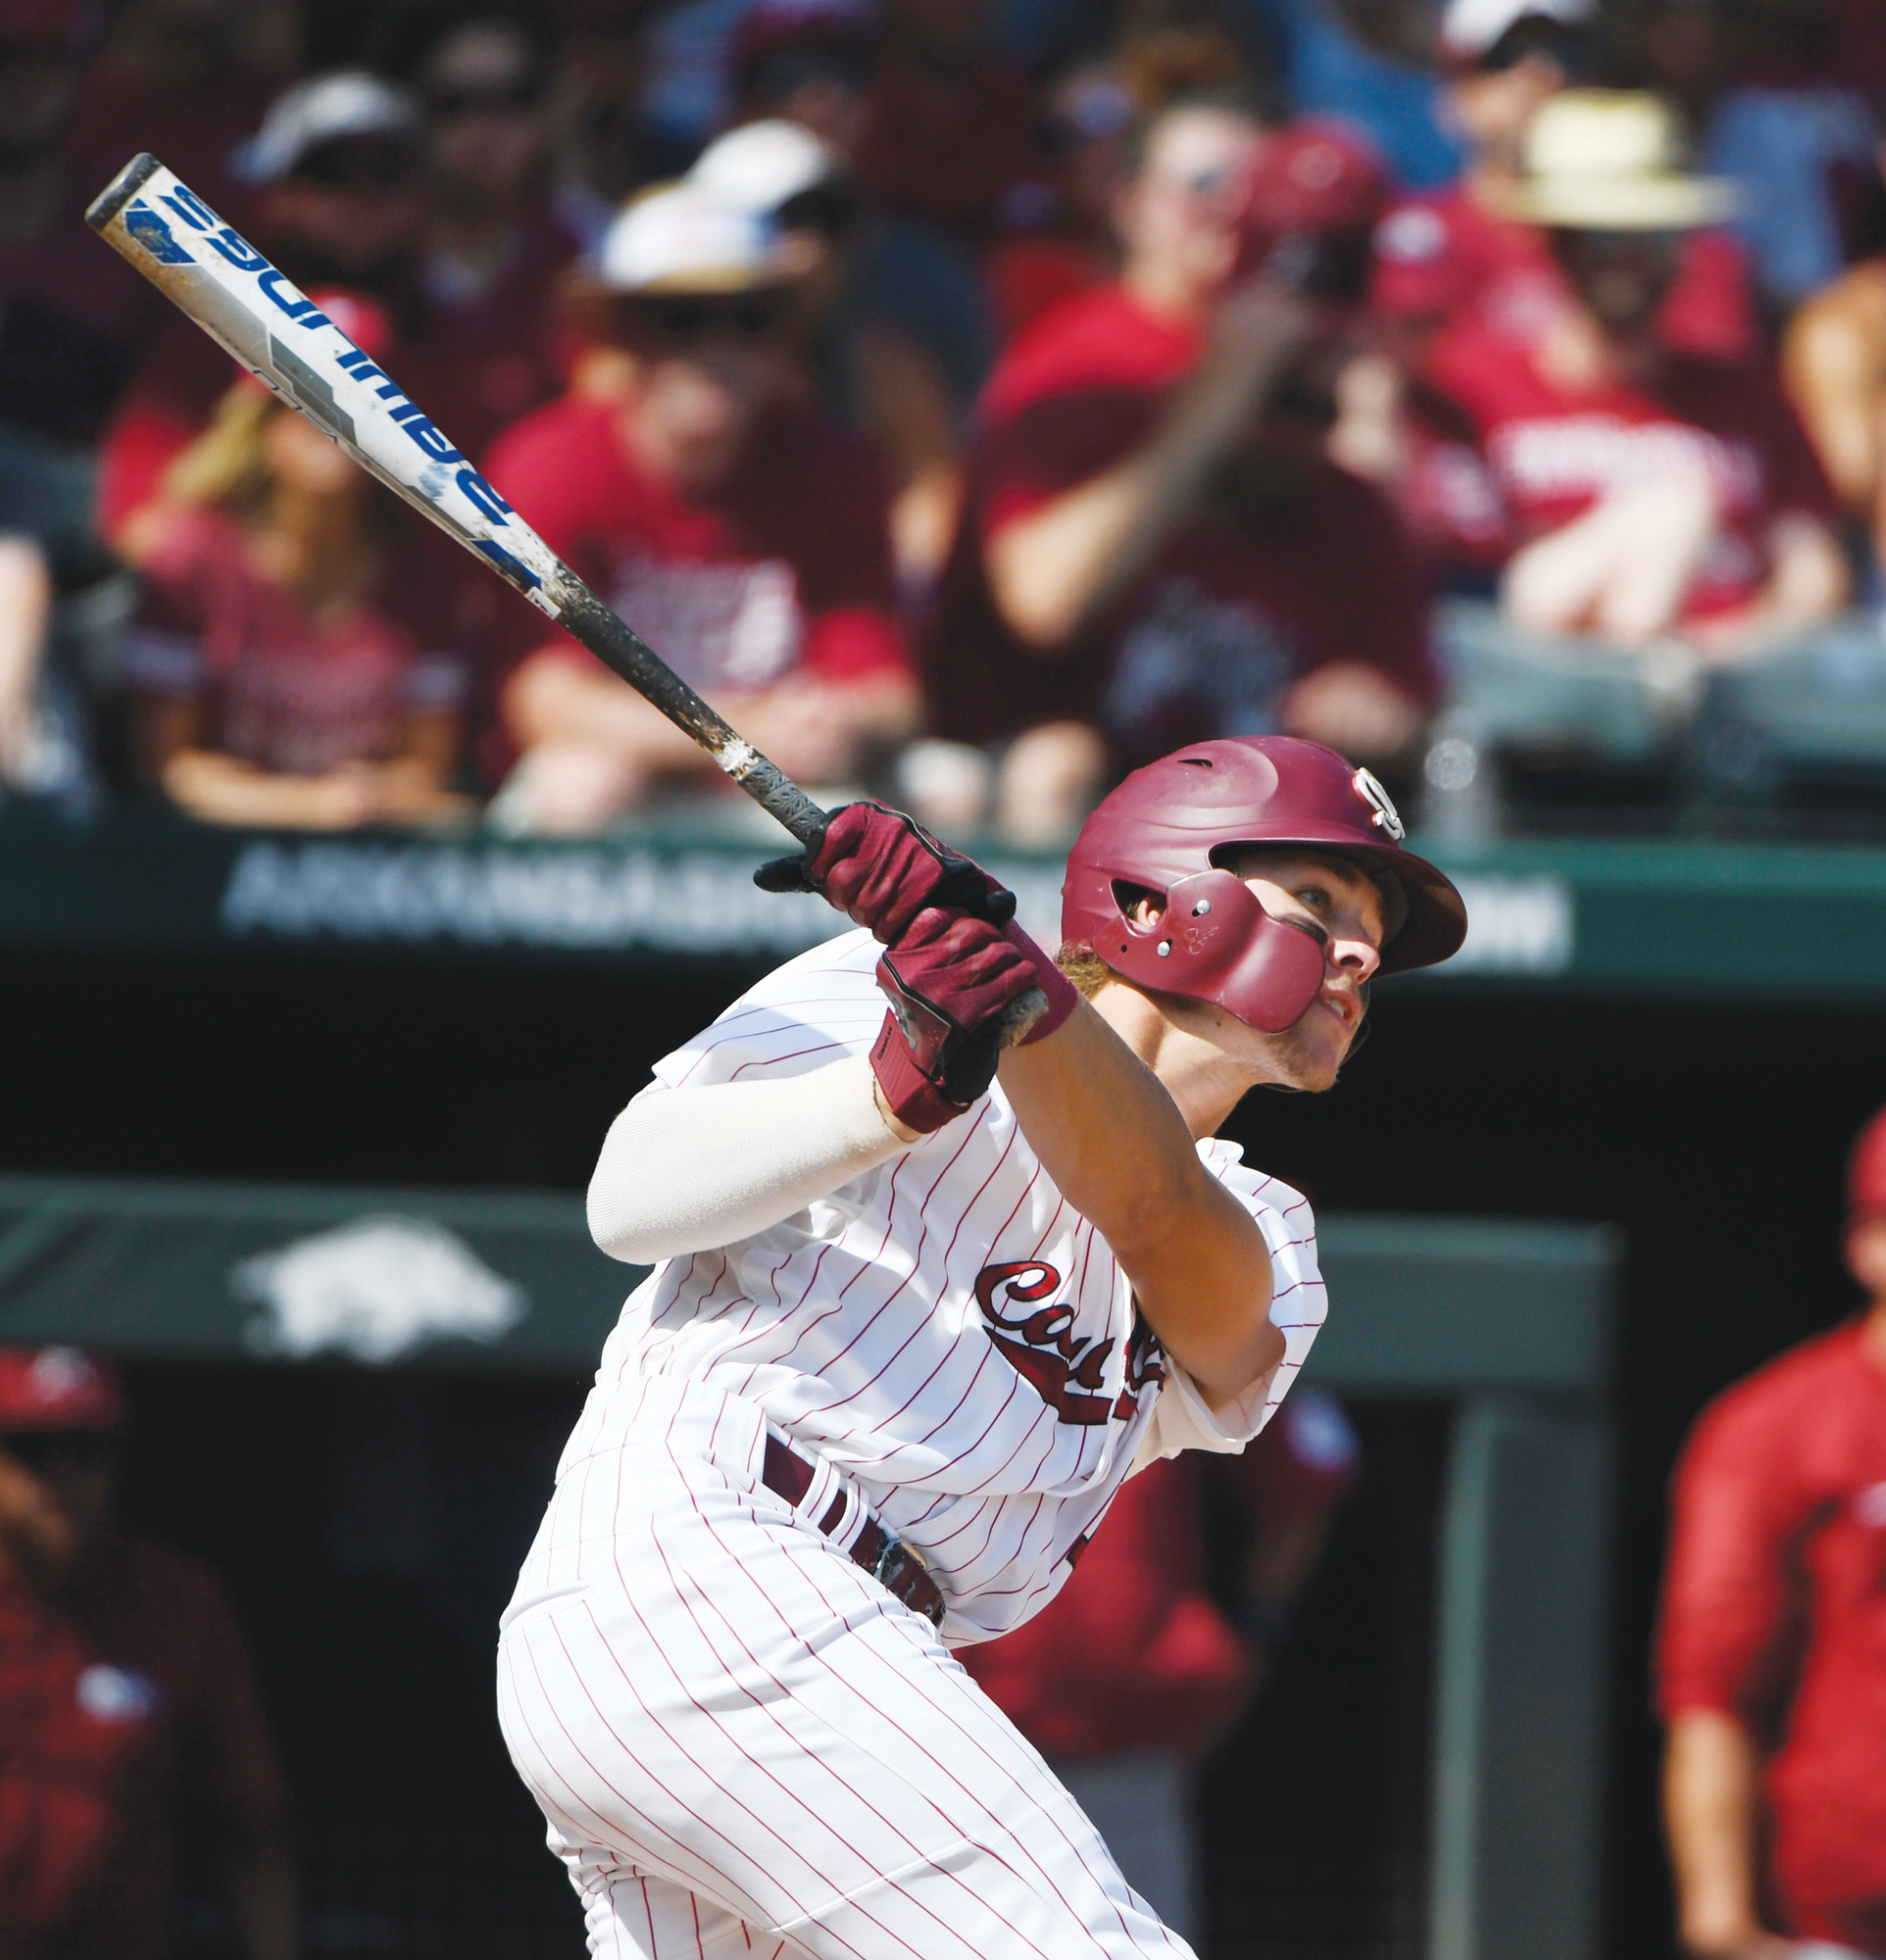 South Carolina's LT Tolbert (11) watches the ball after hitting a grand slam home run against Arkansas in the fifth inning of their NCAA baseball super regional  game in Fayetteville, Arkansas, on Sunday.